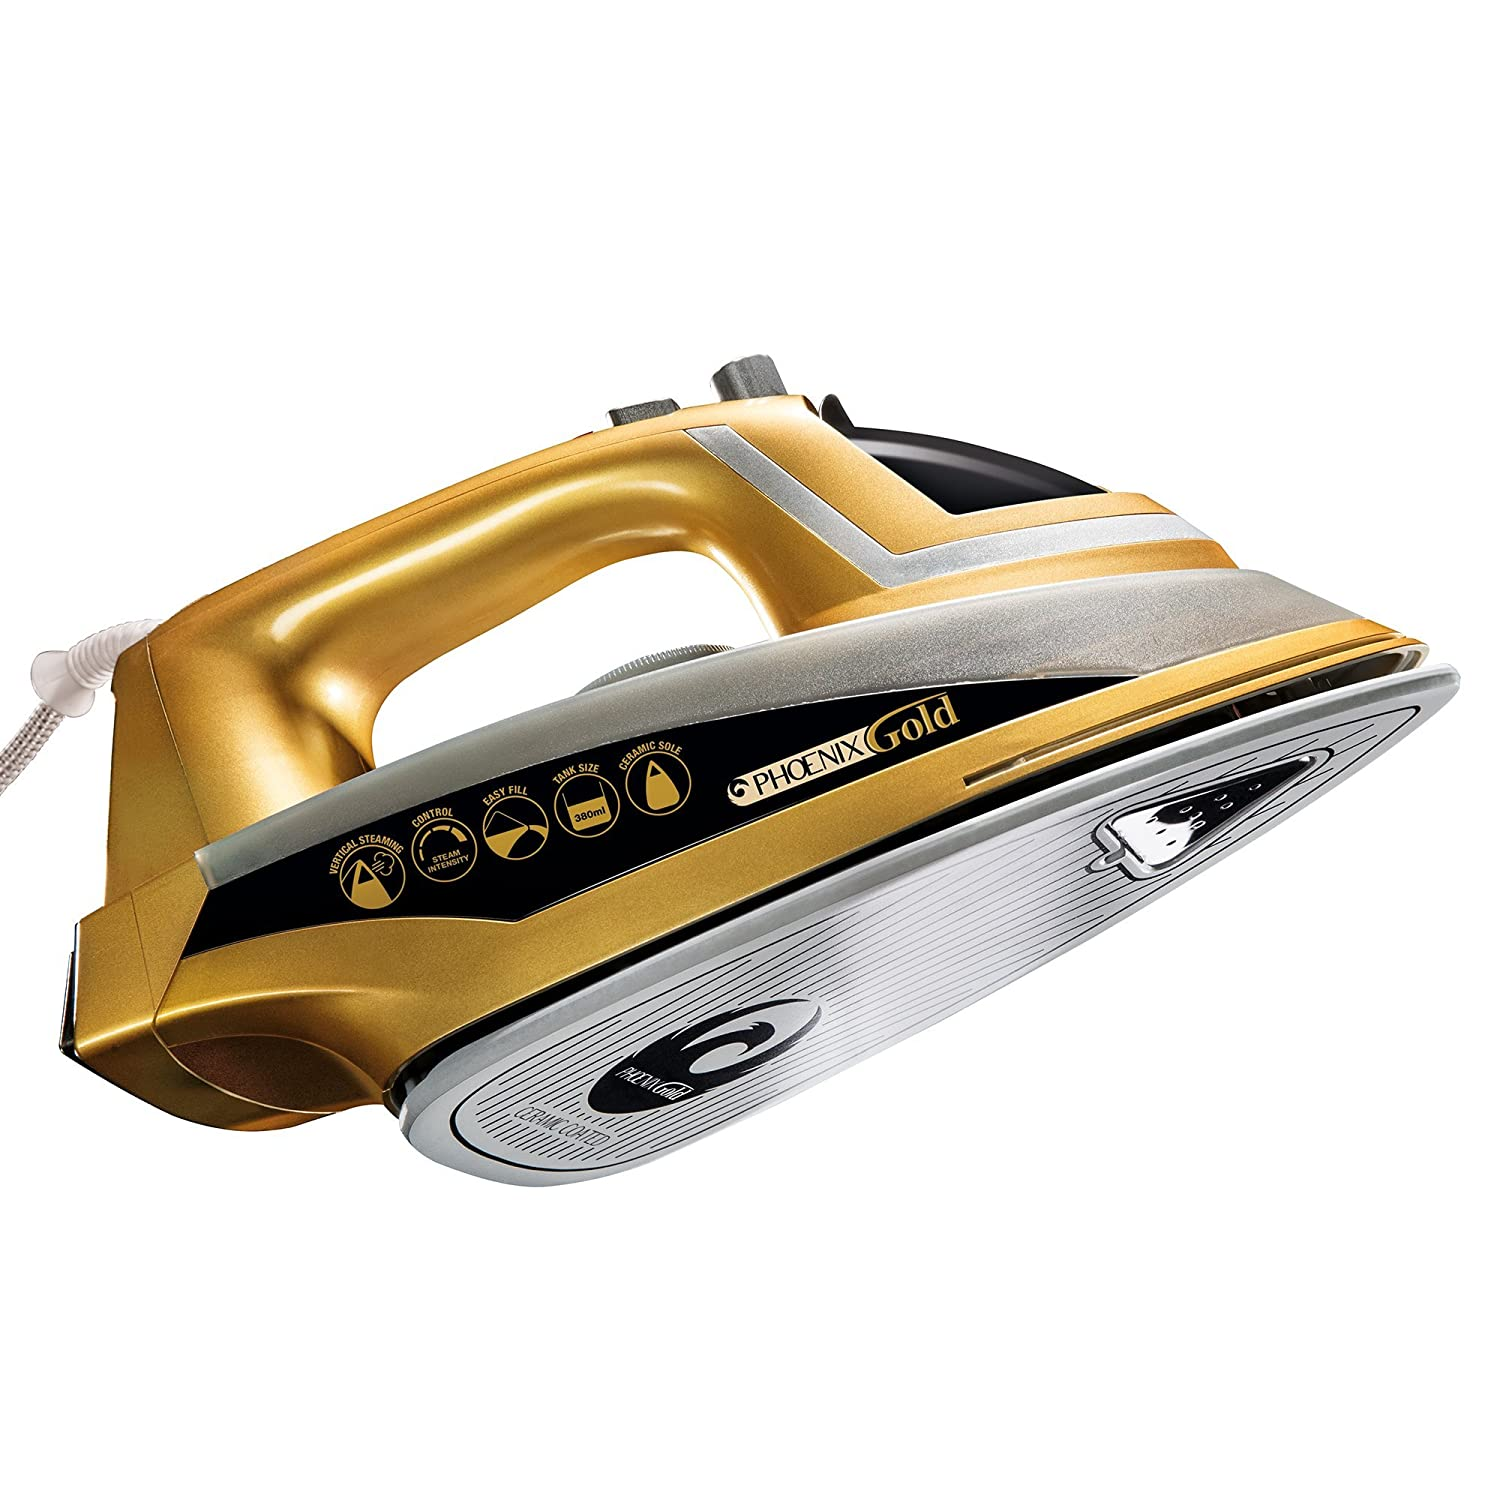 Jml Jml Phoenix Gold Ceramic Iron With Built-In Steam